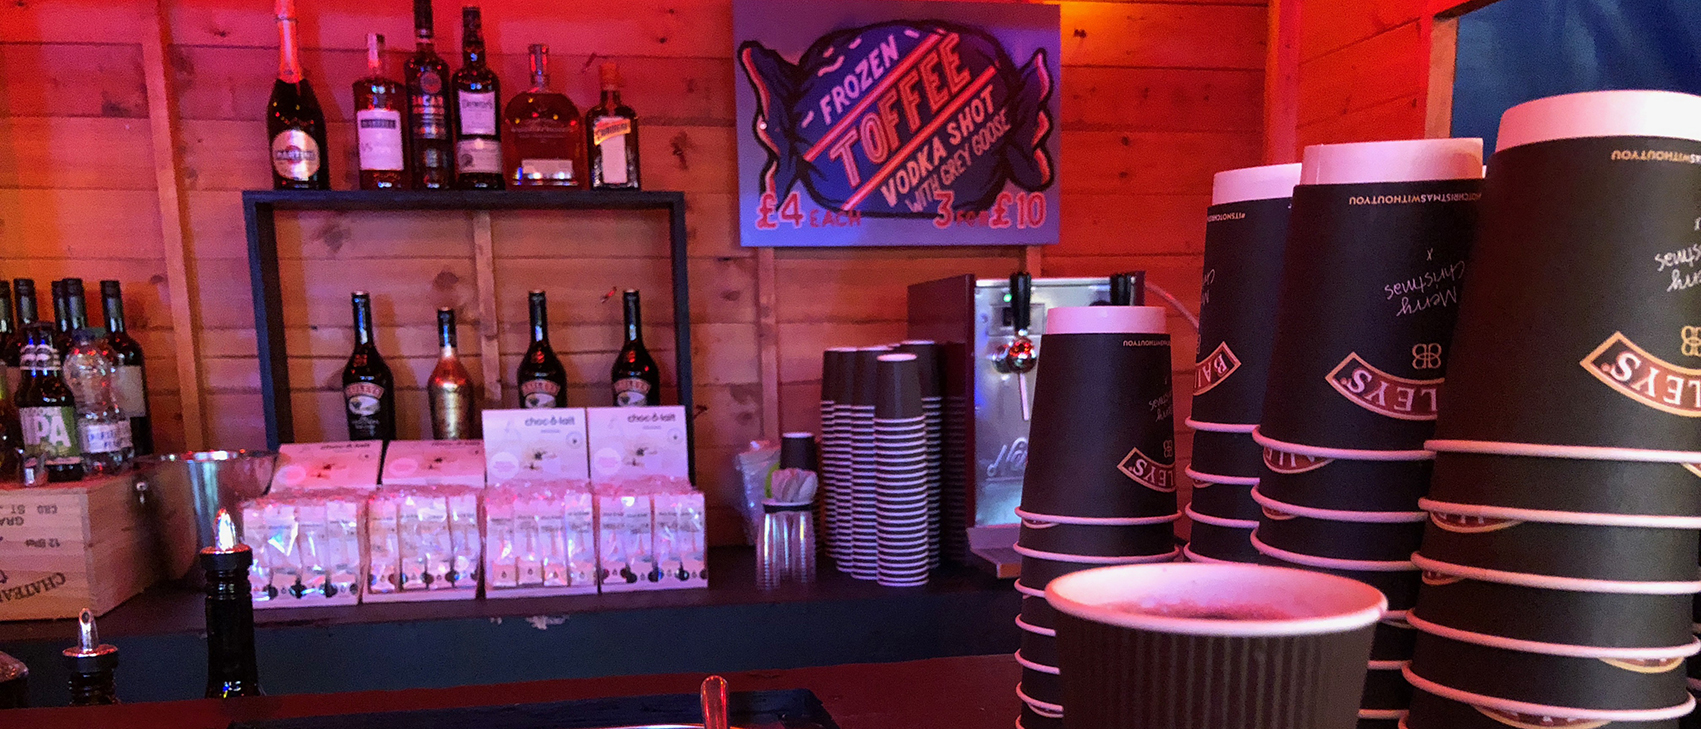 One of the smaller bar cabins dotted around the site selling mulled wine, boozy hot chocolates and frozen toffee vodka shots.